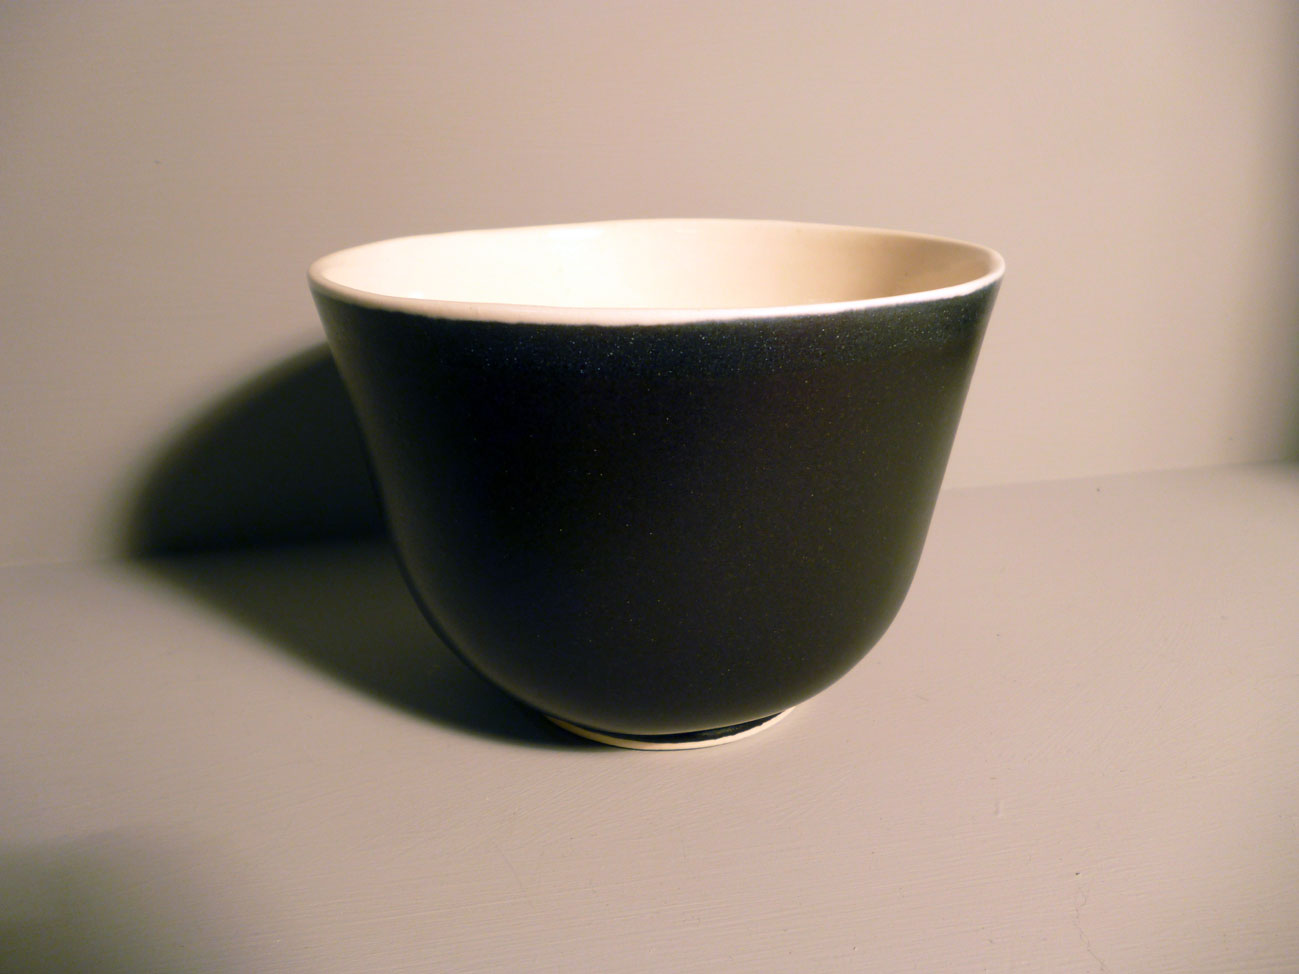 Bell Bowl 13.5cm Dia in Graphite-Black